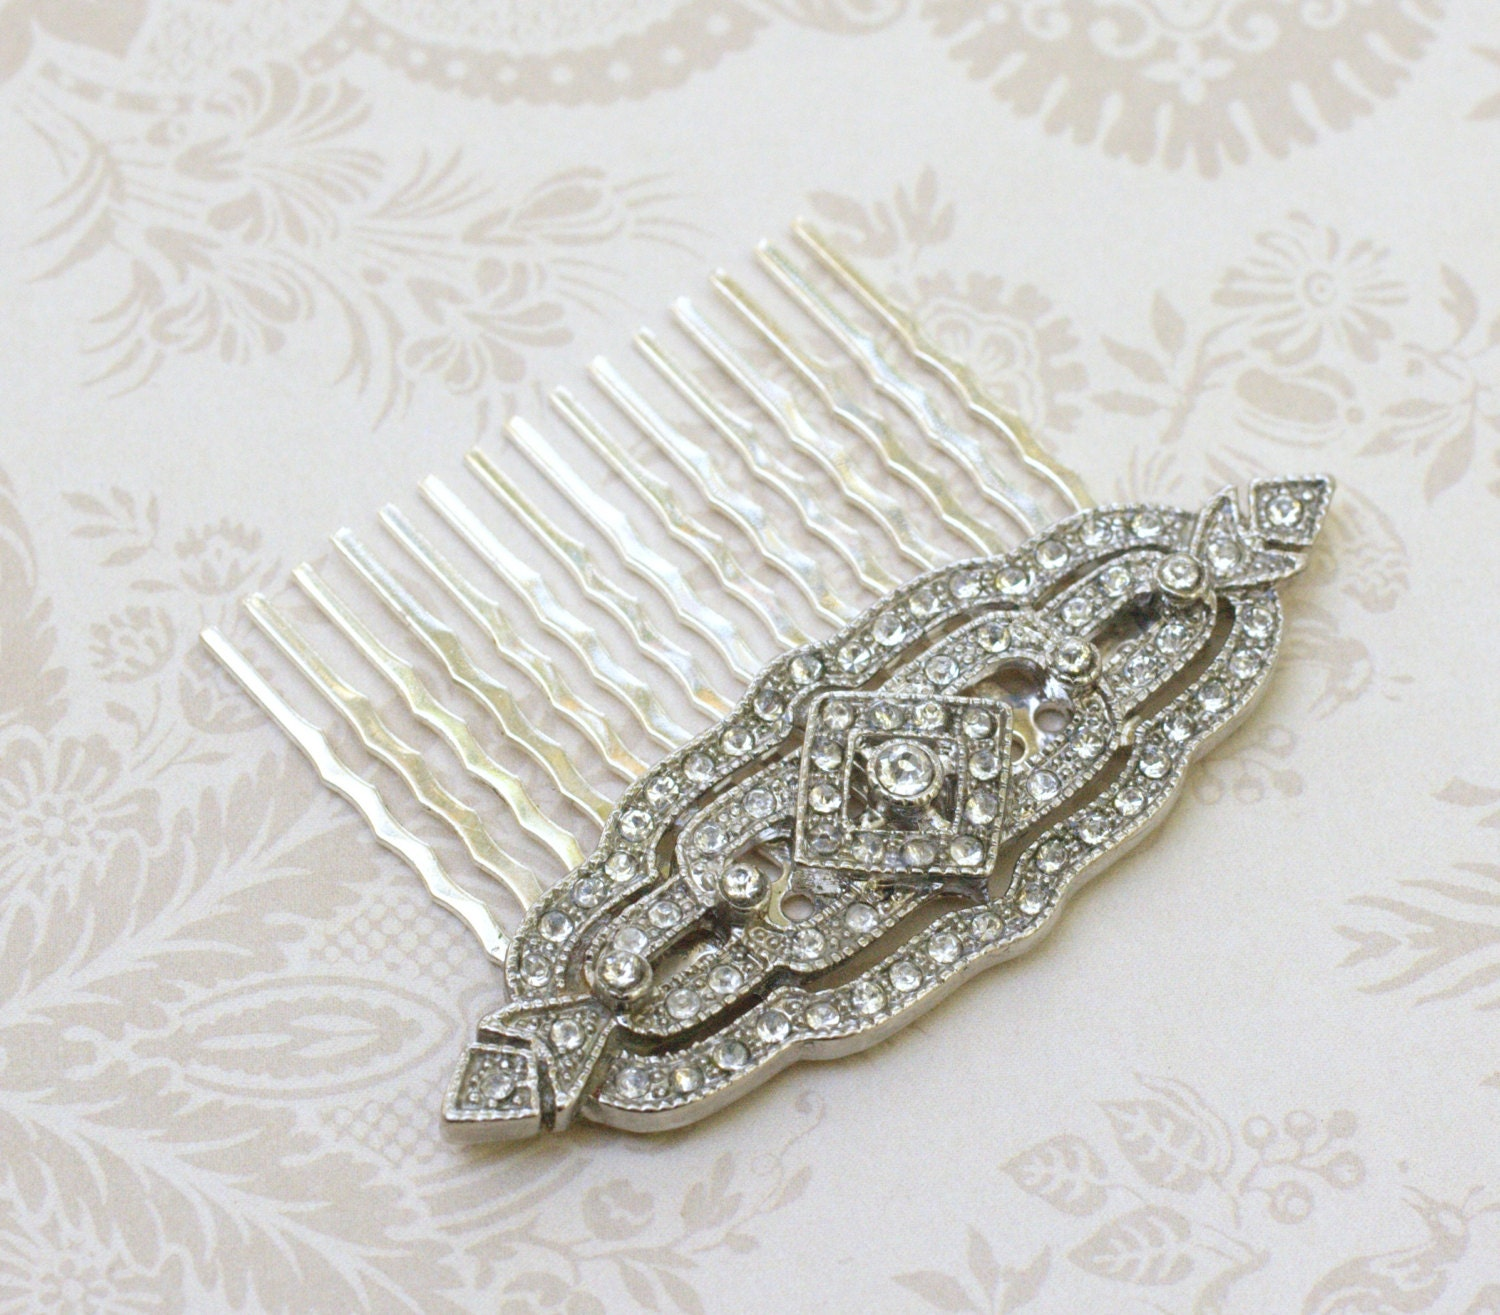 Bridal Hair Comb Crystal Rhinestone Antique Style Filigree Art Etsy